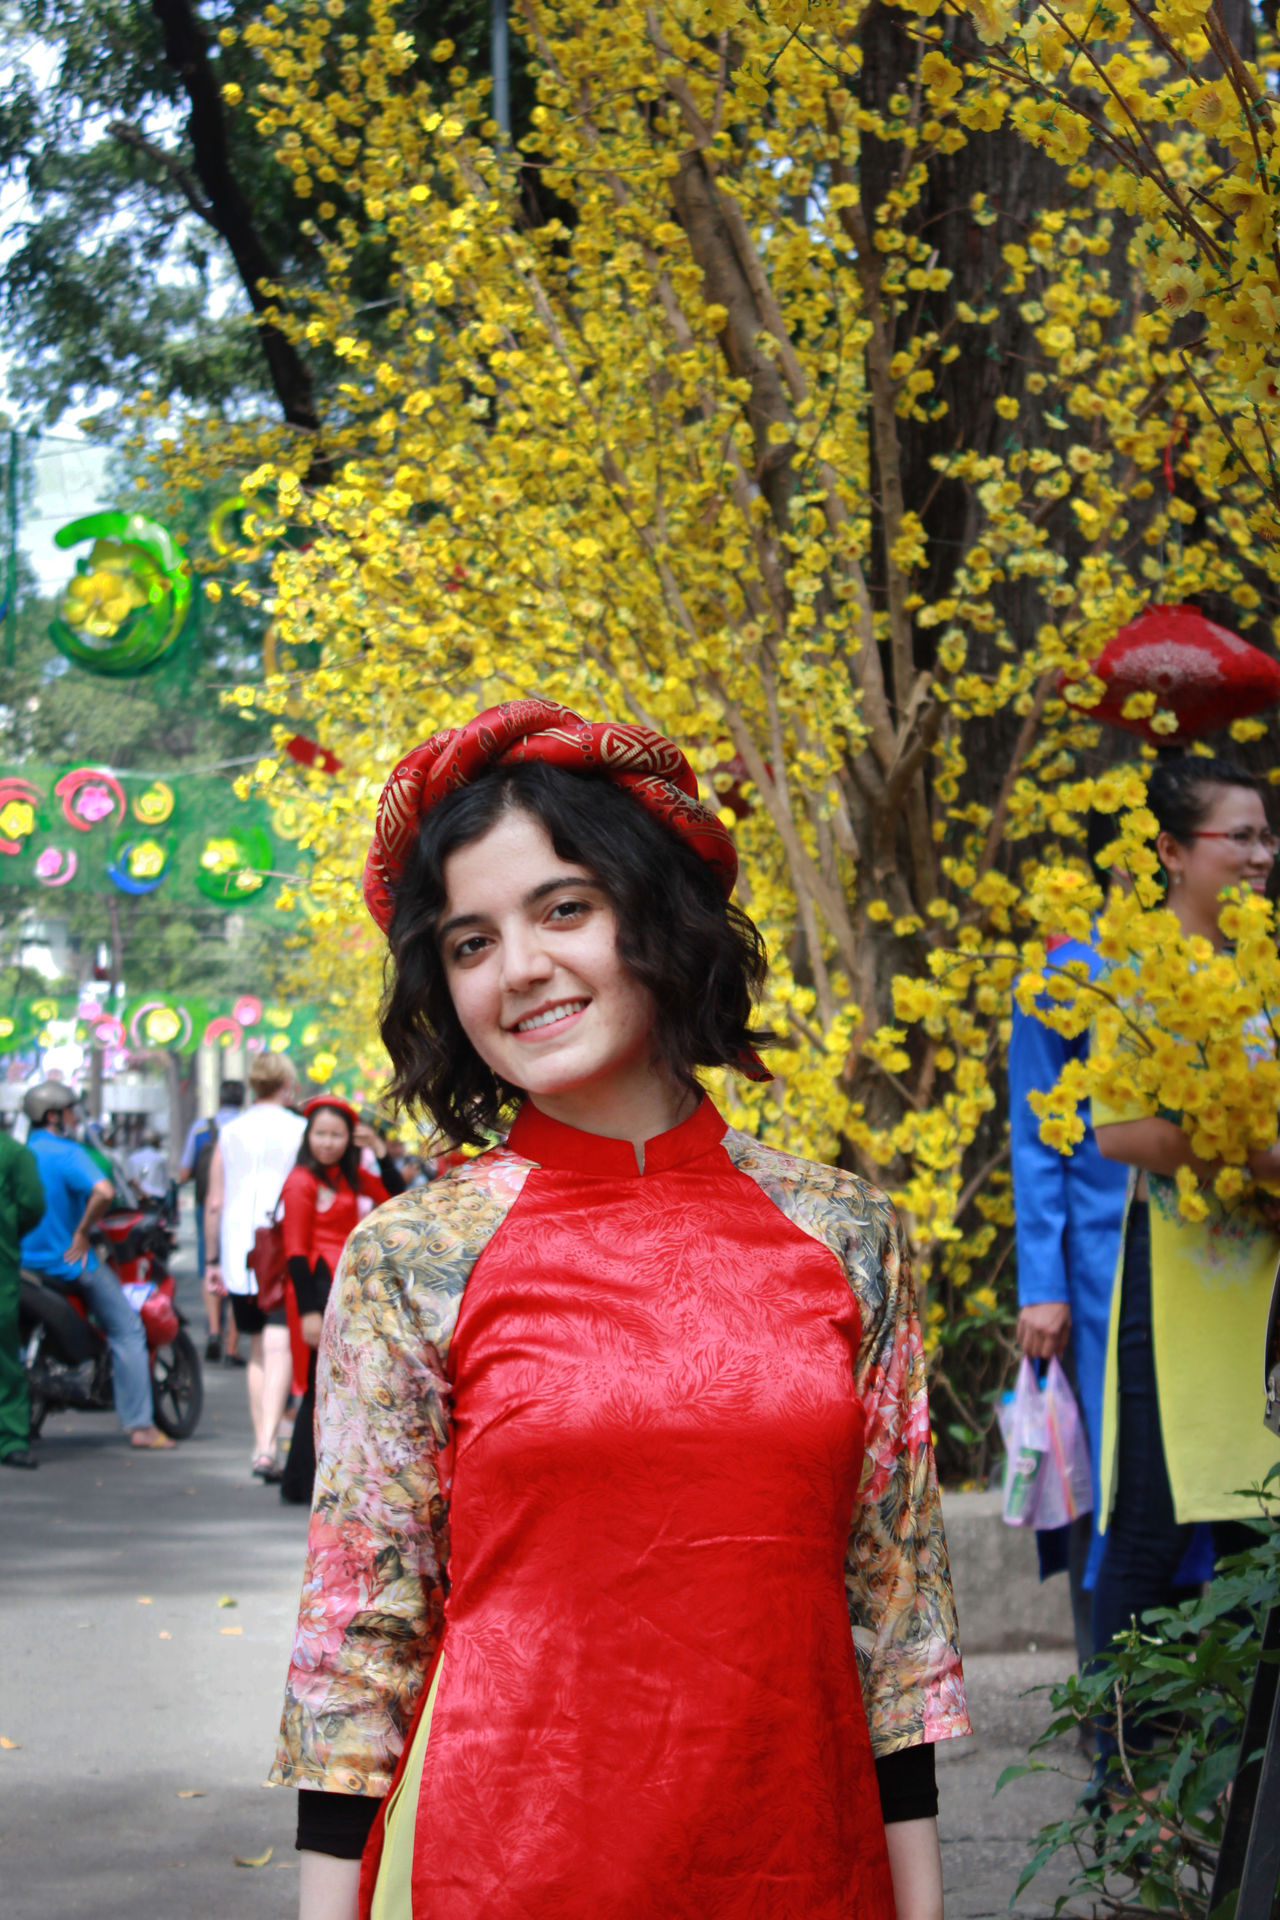 Celebration Cheerful Cultures Decoration Flower Happiness Looking At Camera Outdoors People People Watching Portrait Smiling Standing Tet 2017 Tet Holiday Tet In Saigon Tetholiday Toothy Smile Traditional Clothing Tree Tết Vietnam Vietnamese Vietnamesegirl Young Adult